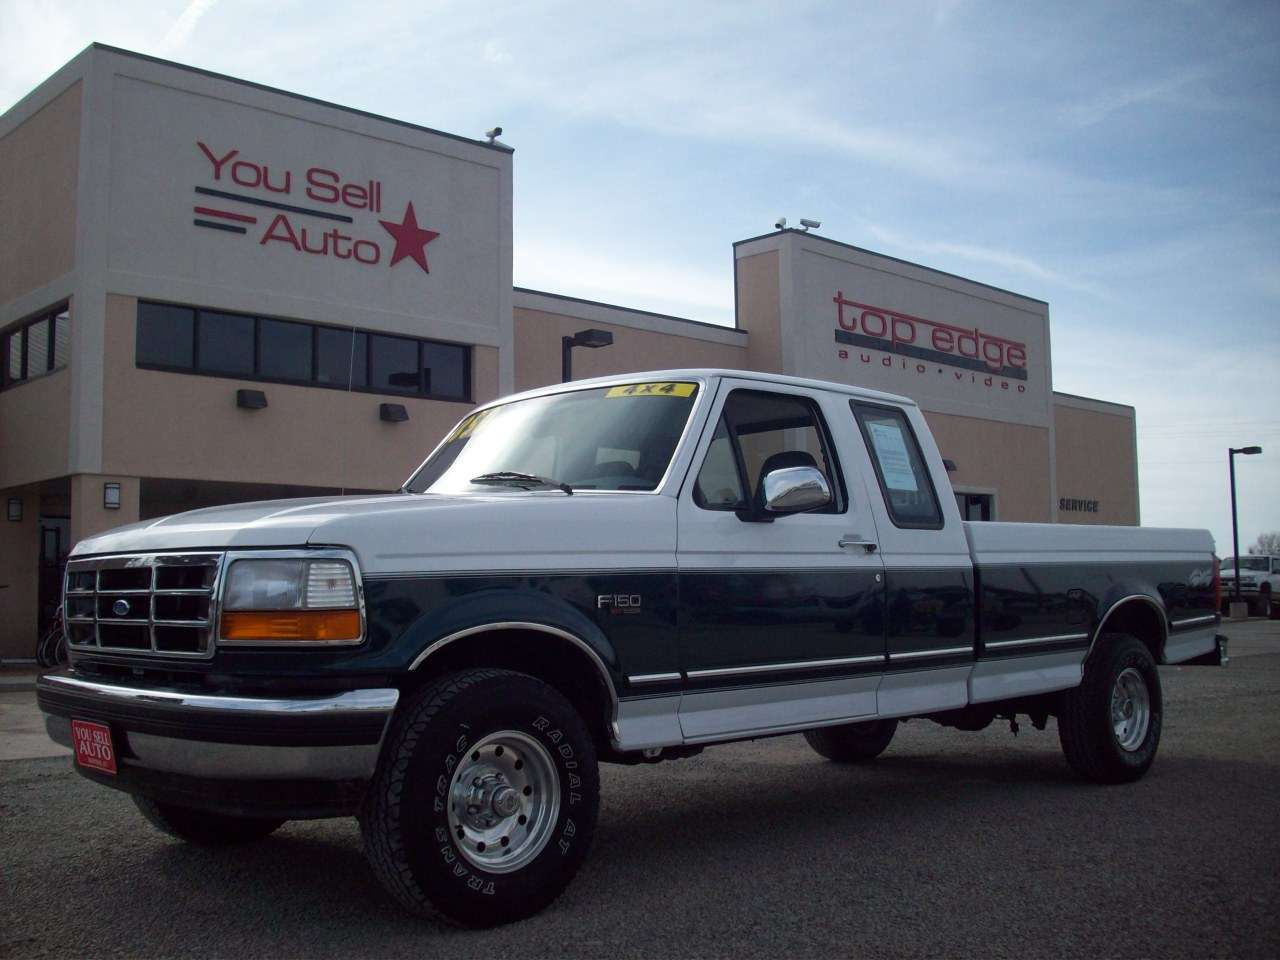 1995 ford f150 xlt 4x4 extended cab pickup sold you sell auto. Black Bedroom Furniture Sets. Home Design Ideas